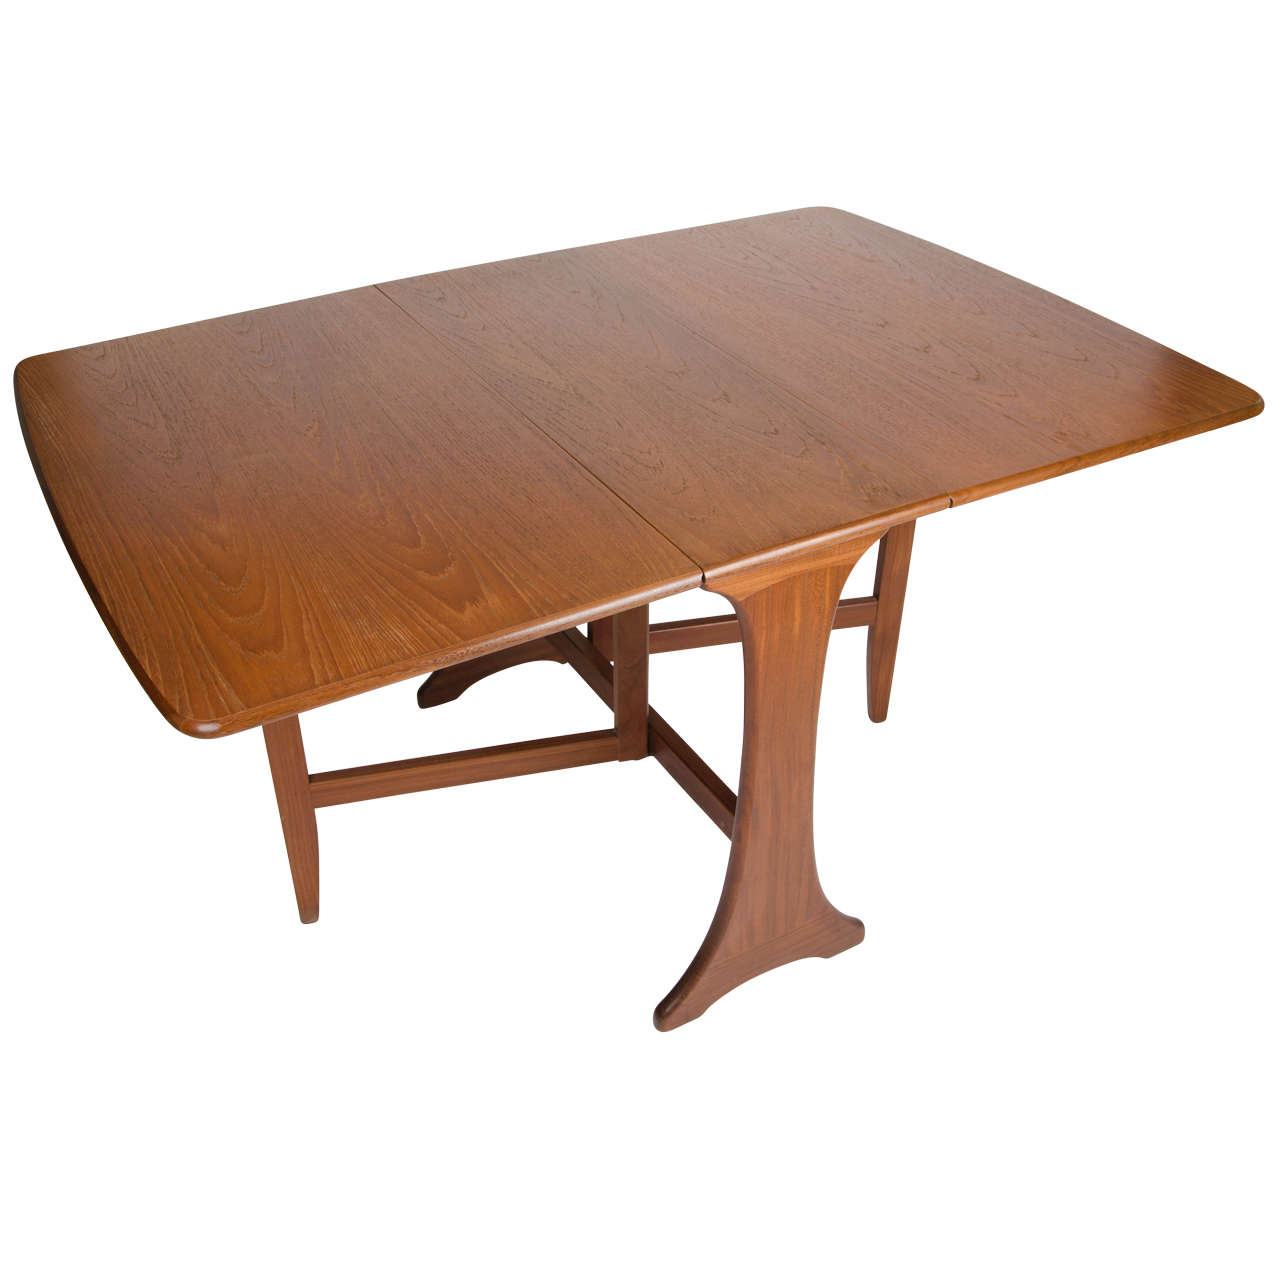 G Plan Mid Century Modern Dining Table Drop Leaf Makers Label, Circa 1950s